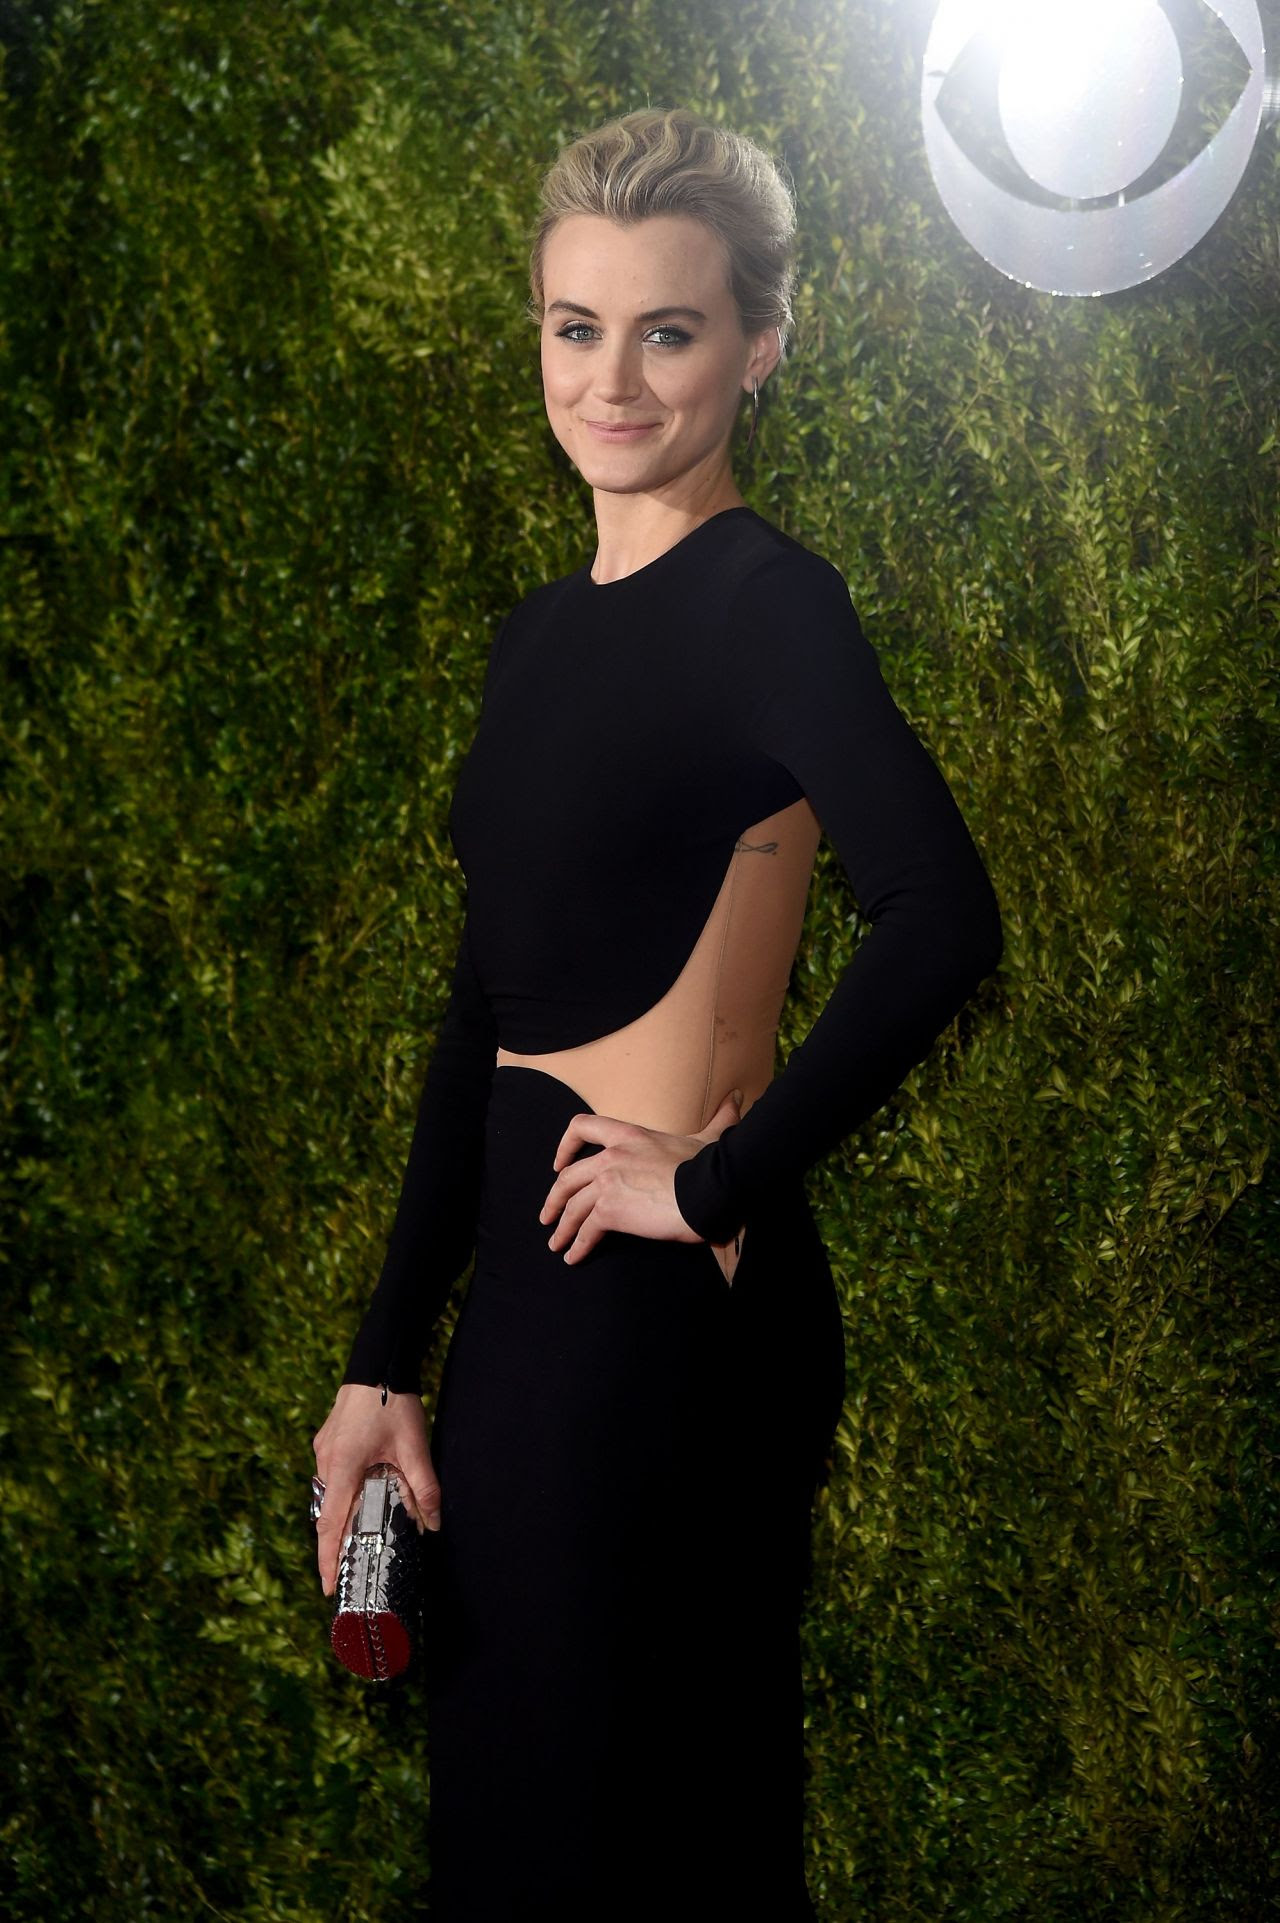 http://fashionsizzle.com/wp-content/uploads/2015/06/taylor-schilling-2015-tony-awards-in-new-york-city_5.jpg